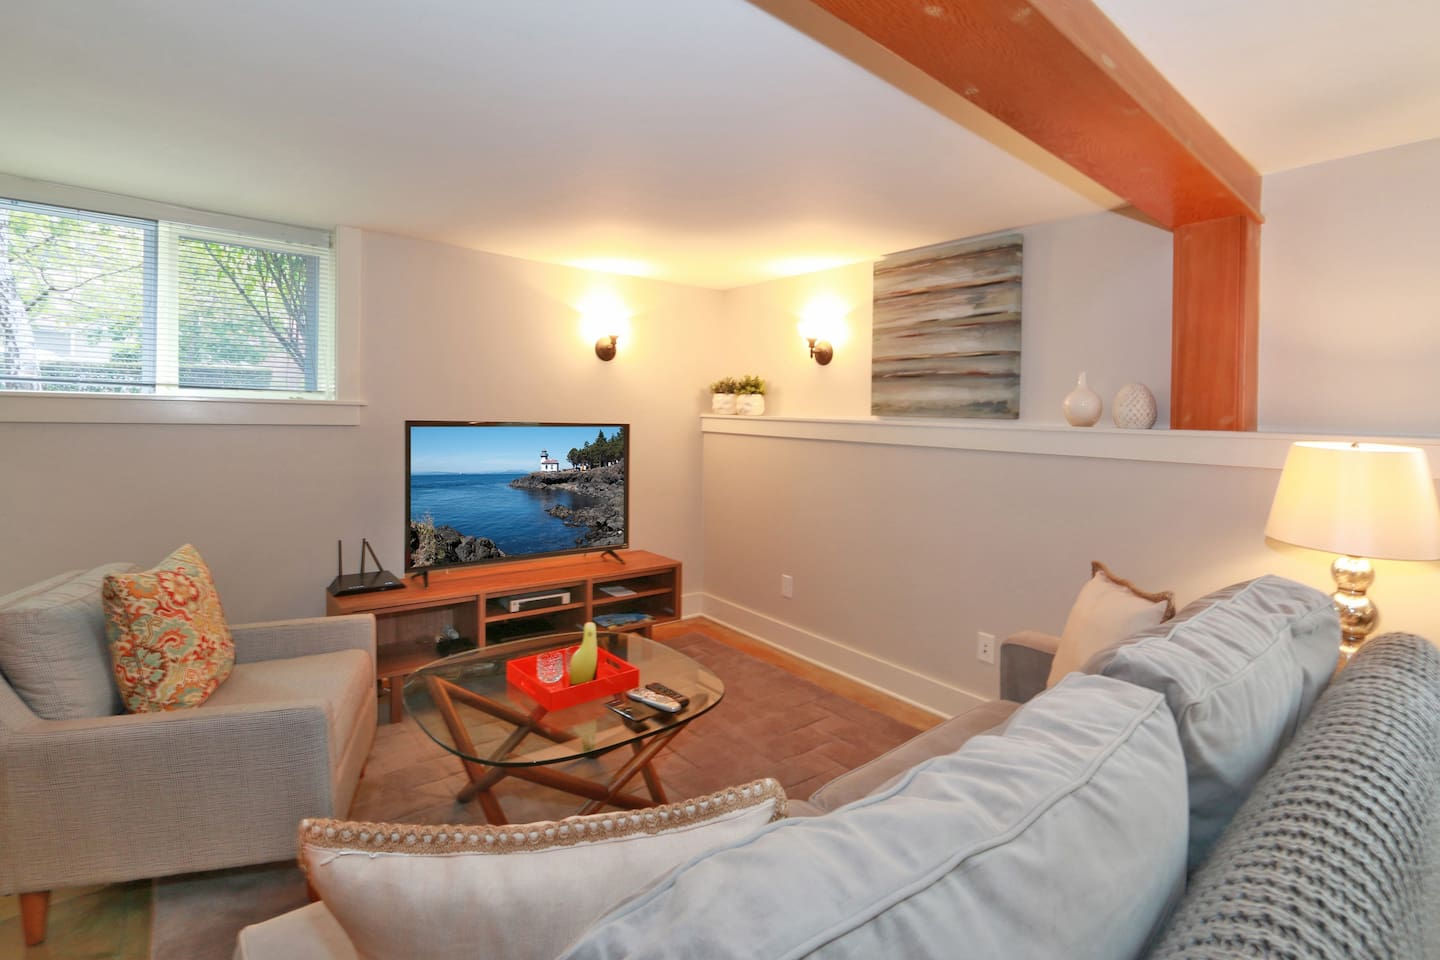 Basement apartment creating an airbnb worthy basement with basement - Capitol Hill Historic District Apartments For Rent In Seattle Washington United States